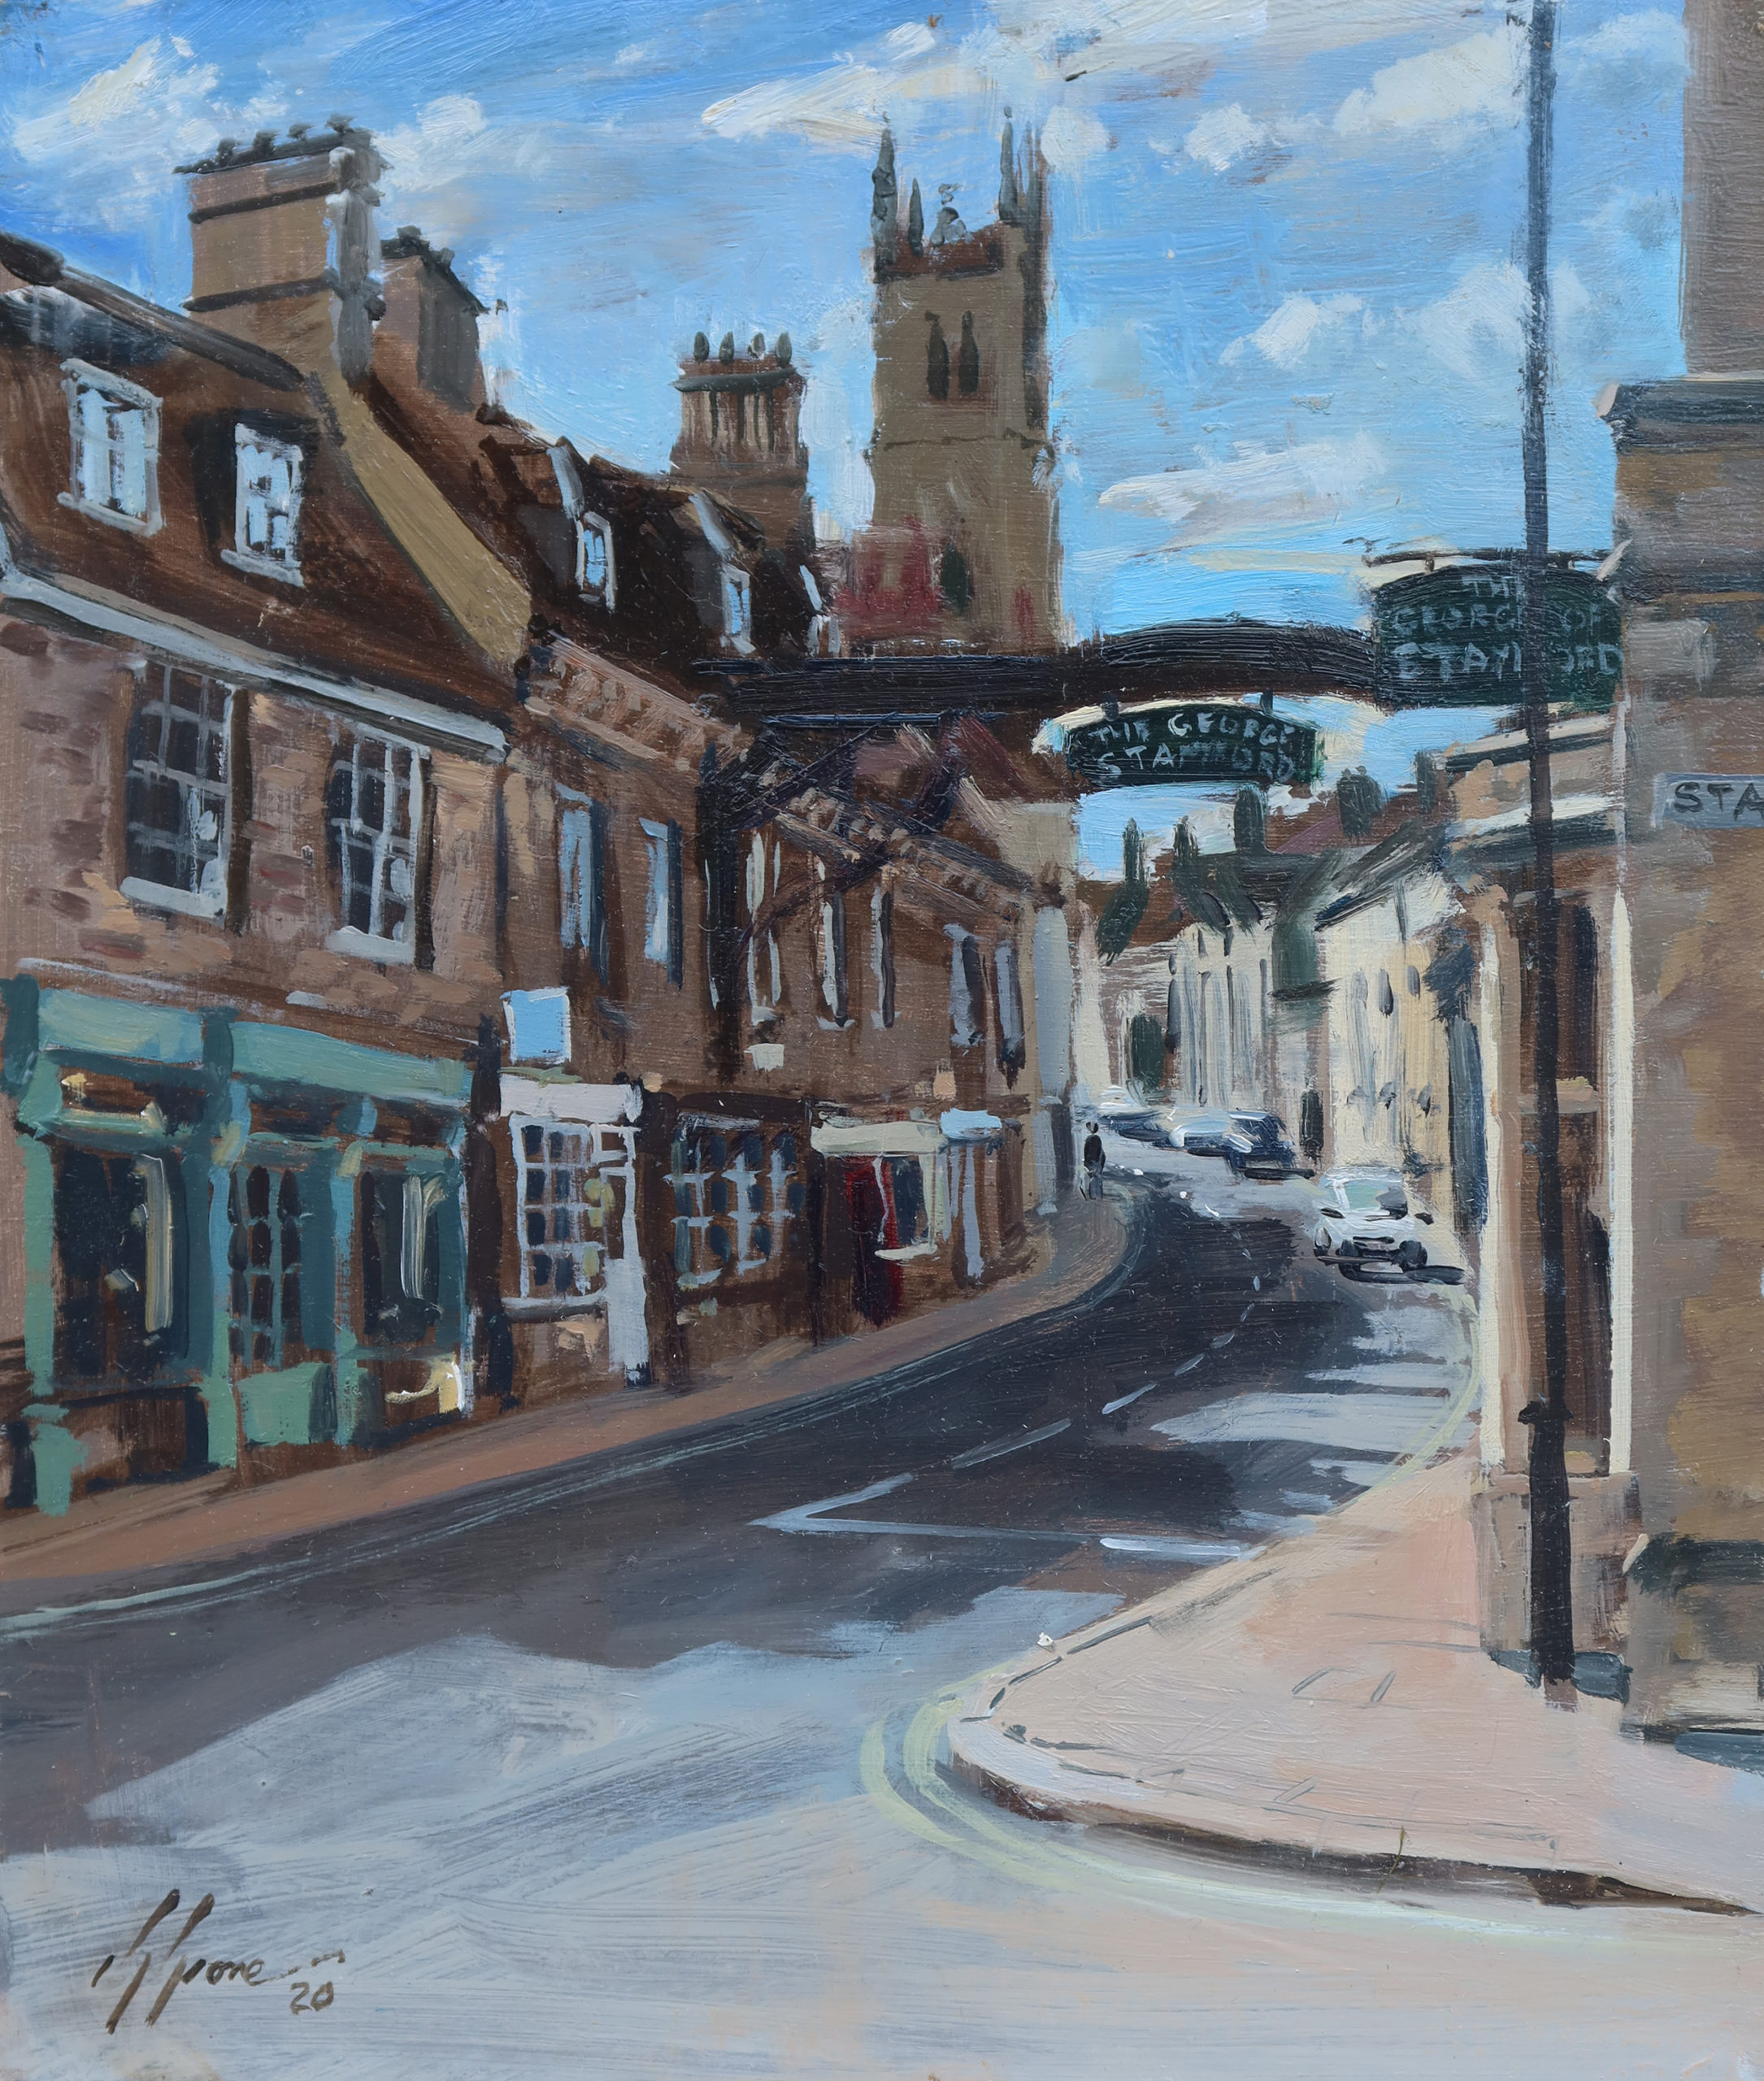 High Street St Martins, from the Crossroads, Stamford